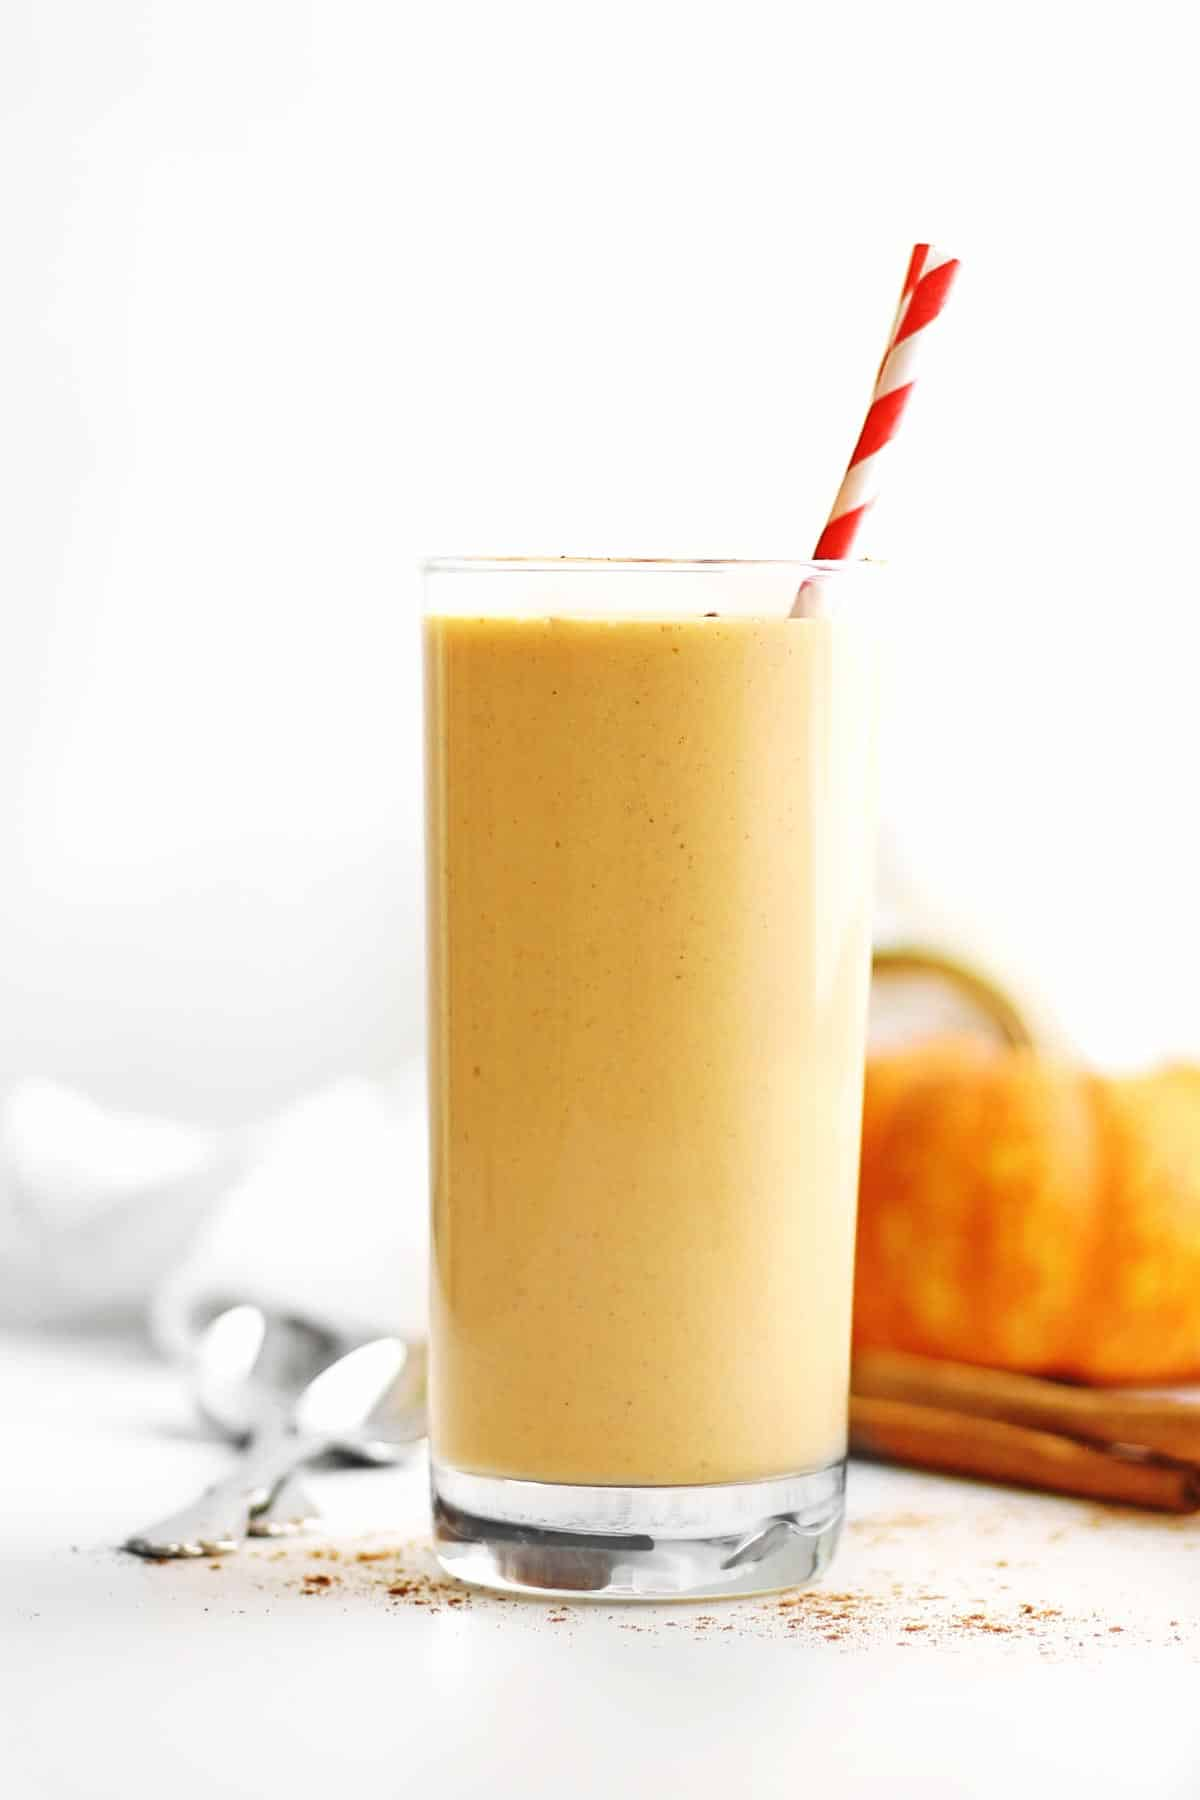 Healthy pumpkin smoothie with red and white straw